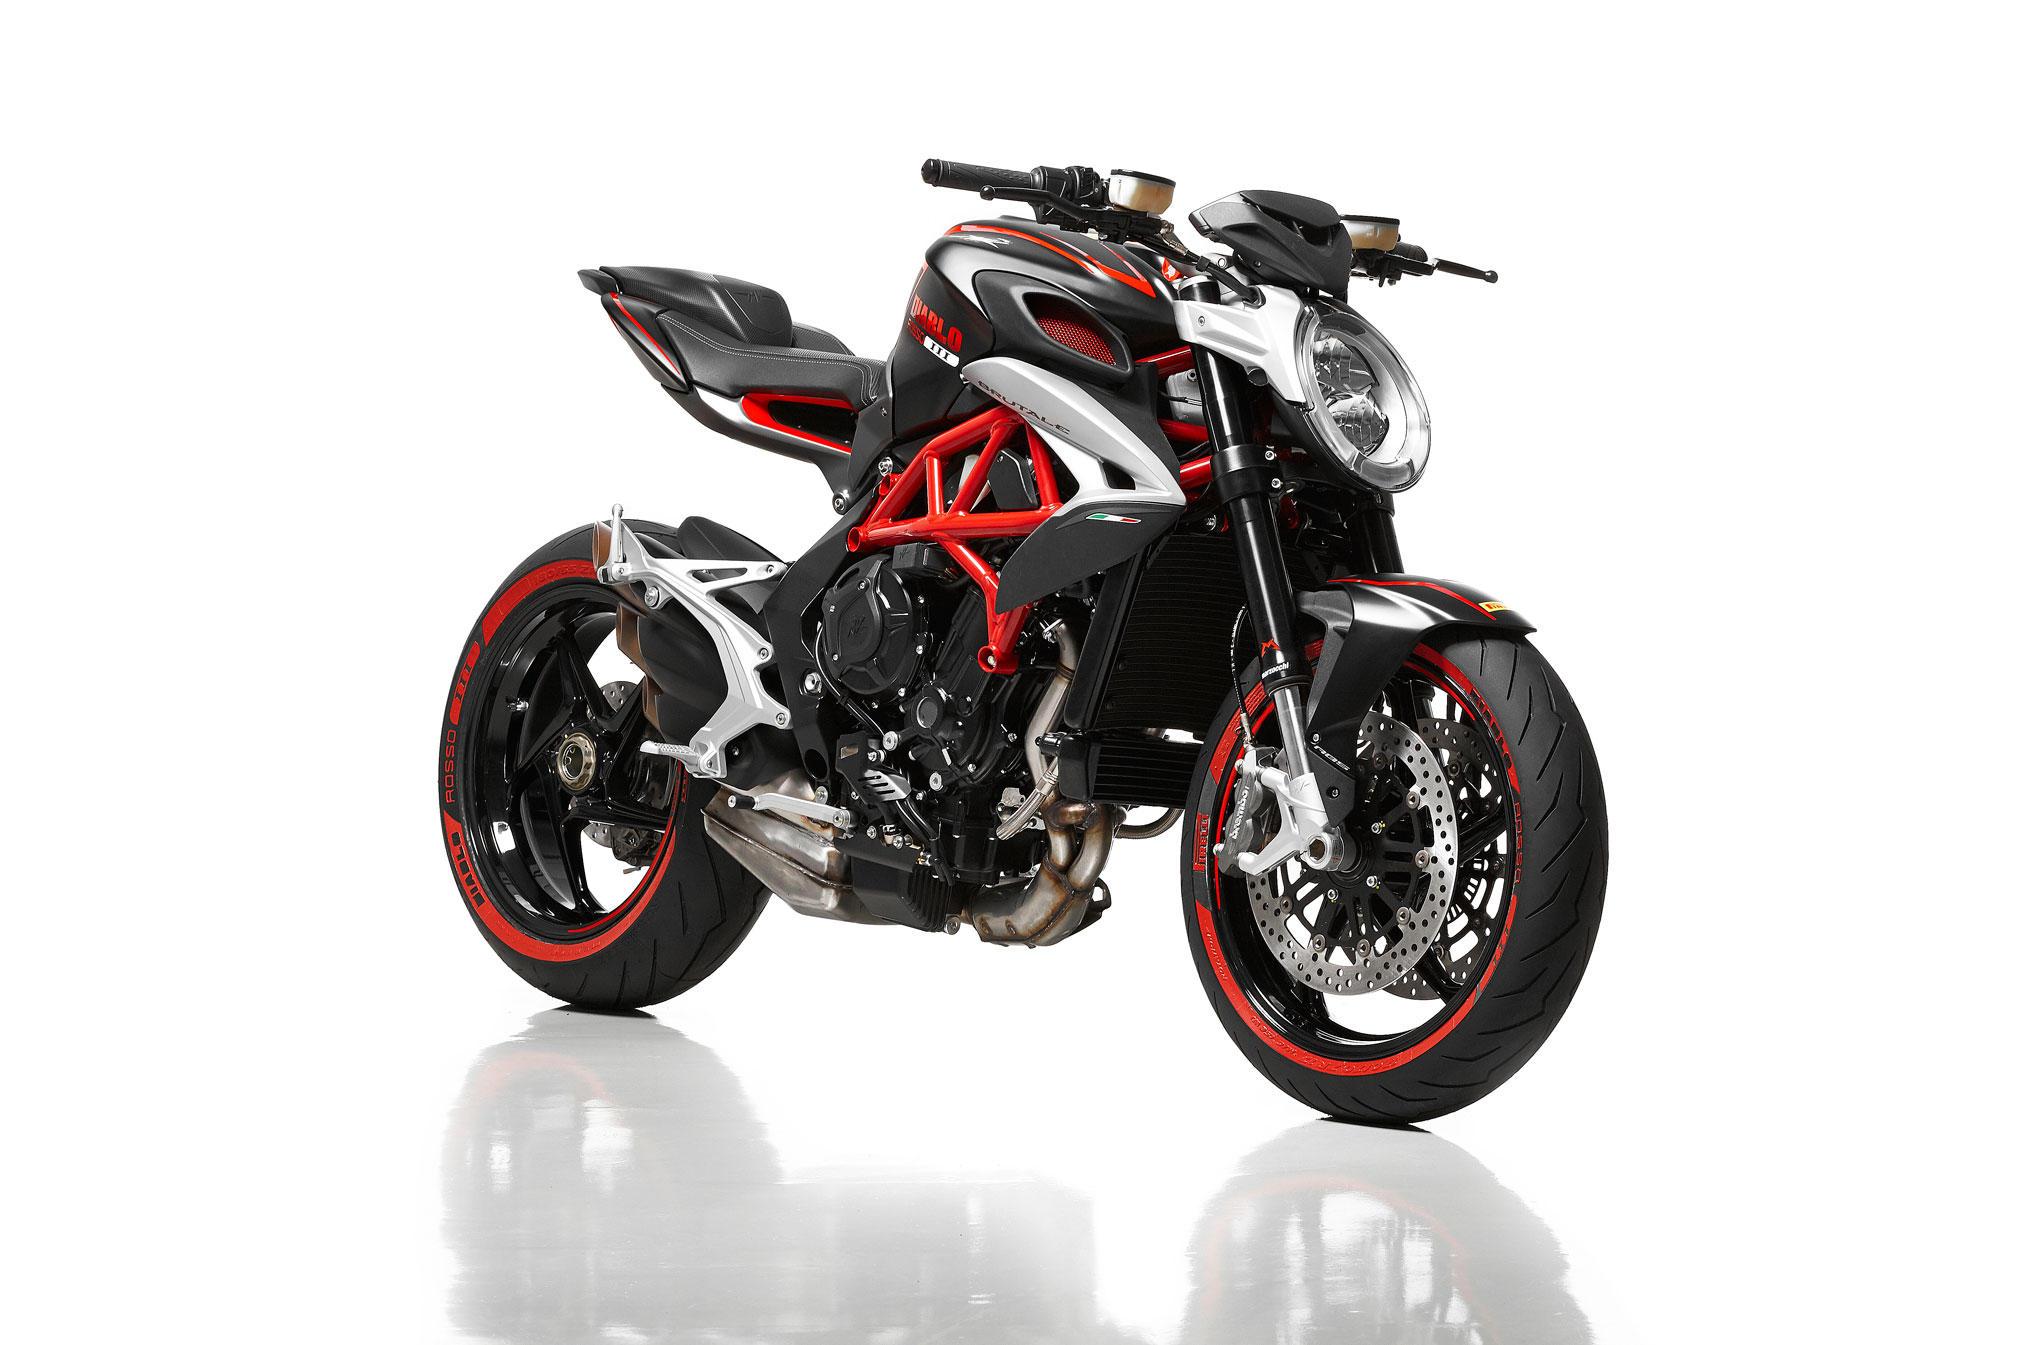 2018 Mv Agusta Diablo Brutale Review Totalmotorcycle